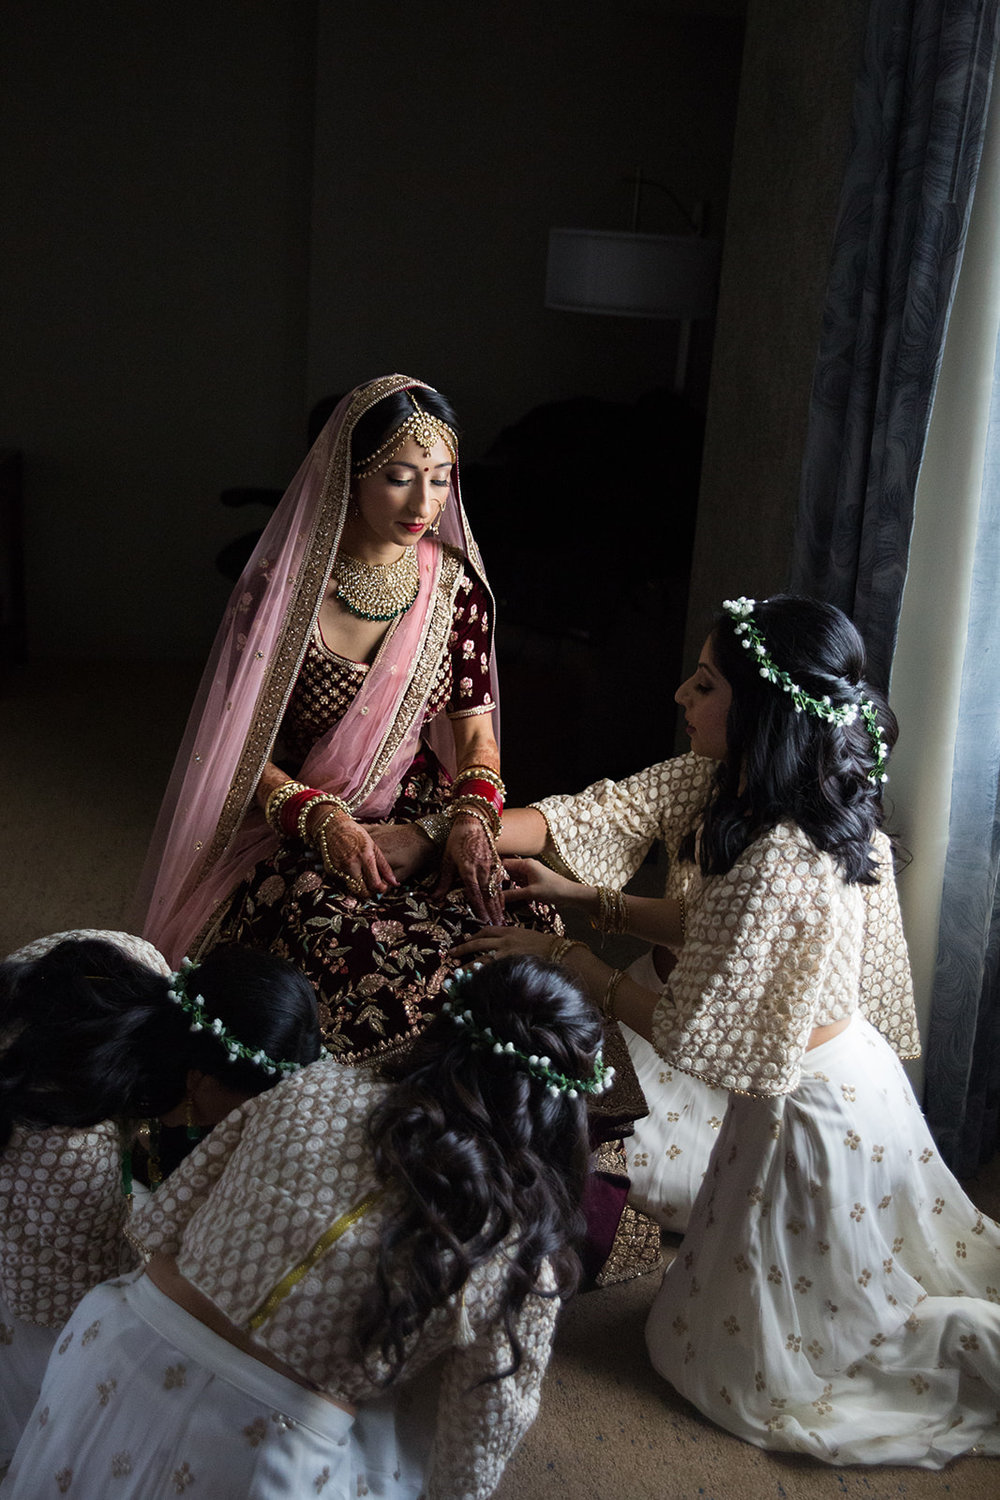 Le Cape Weddings - Puja and Kheelan - Getting Ready Bride -90.jpg